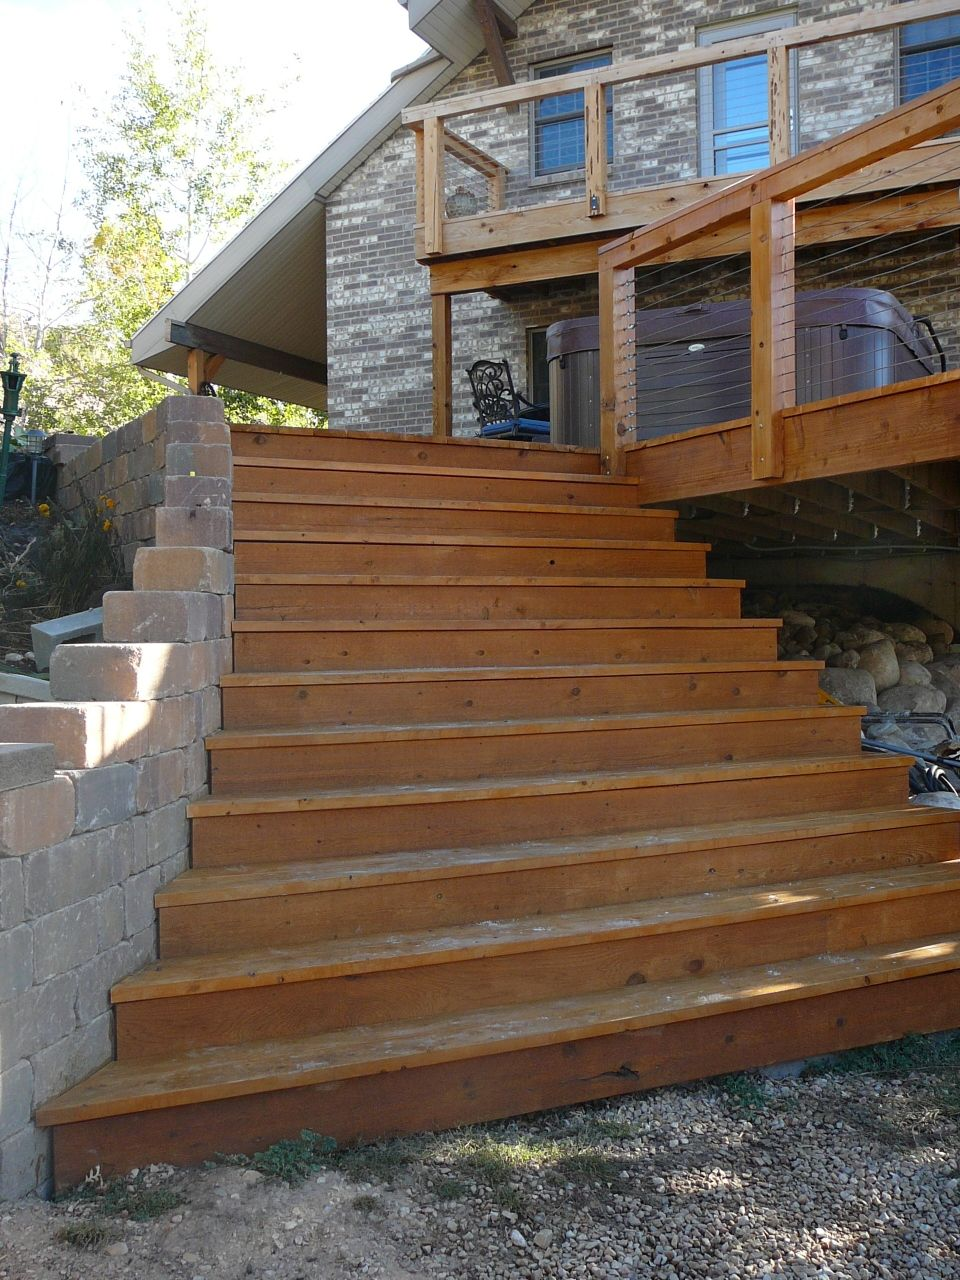 Cedar Board Batten Mackay Idaho Cedar Siding Stairs Port Orford Cedar